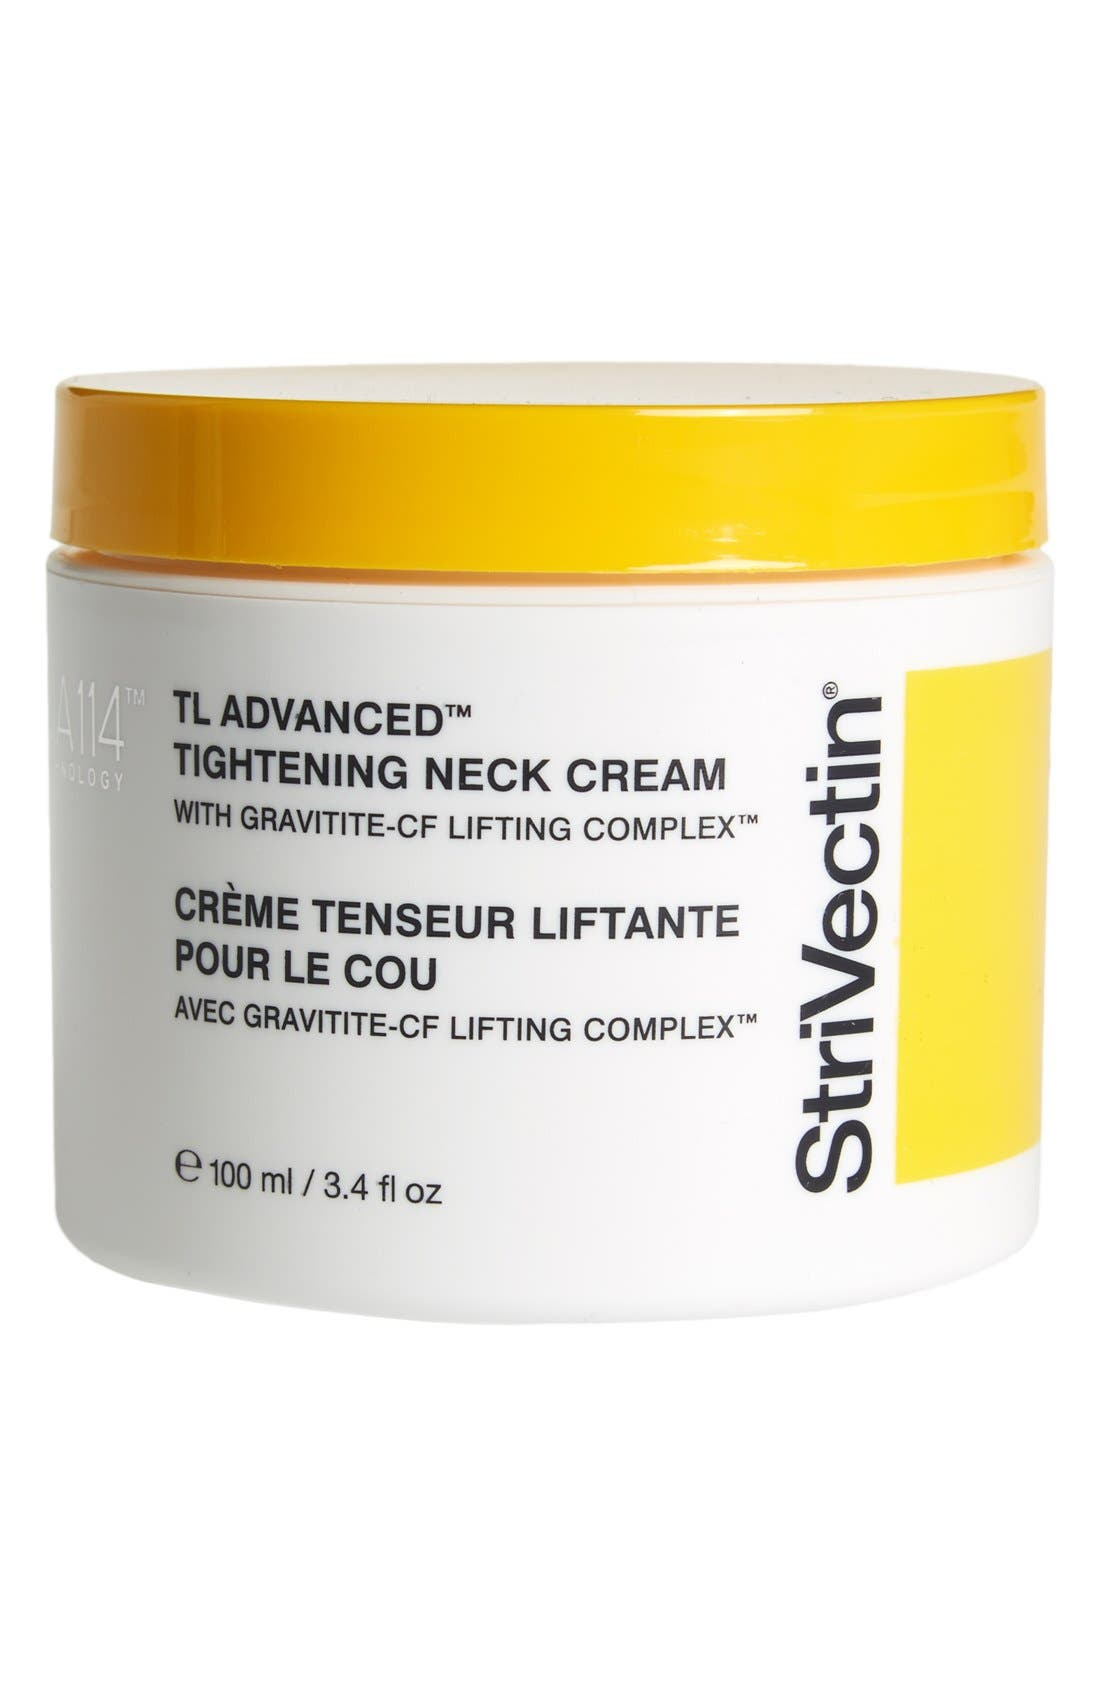 StriVectin®-TL™ 'The Big Deal' Jumbo Advanced Tightening Neck Cream ($189 Value)